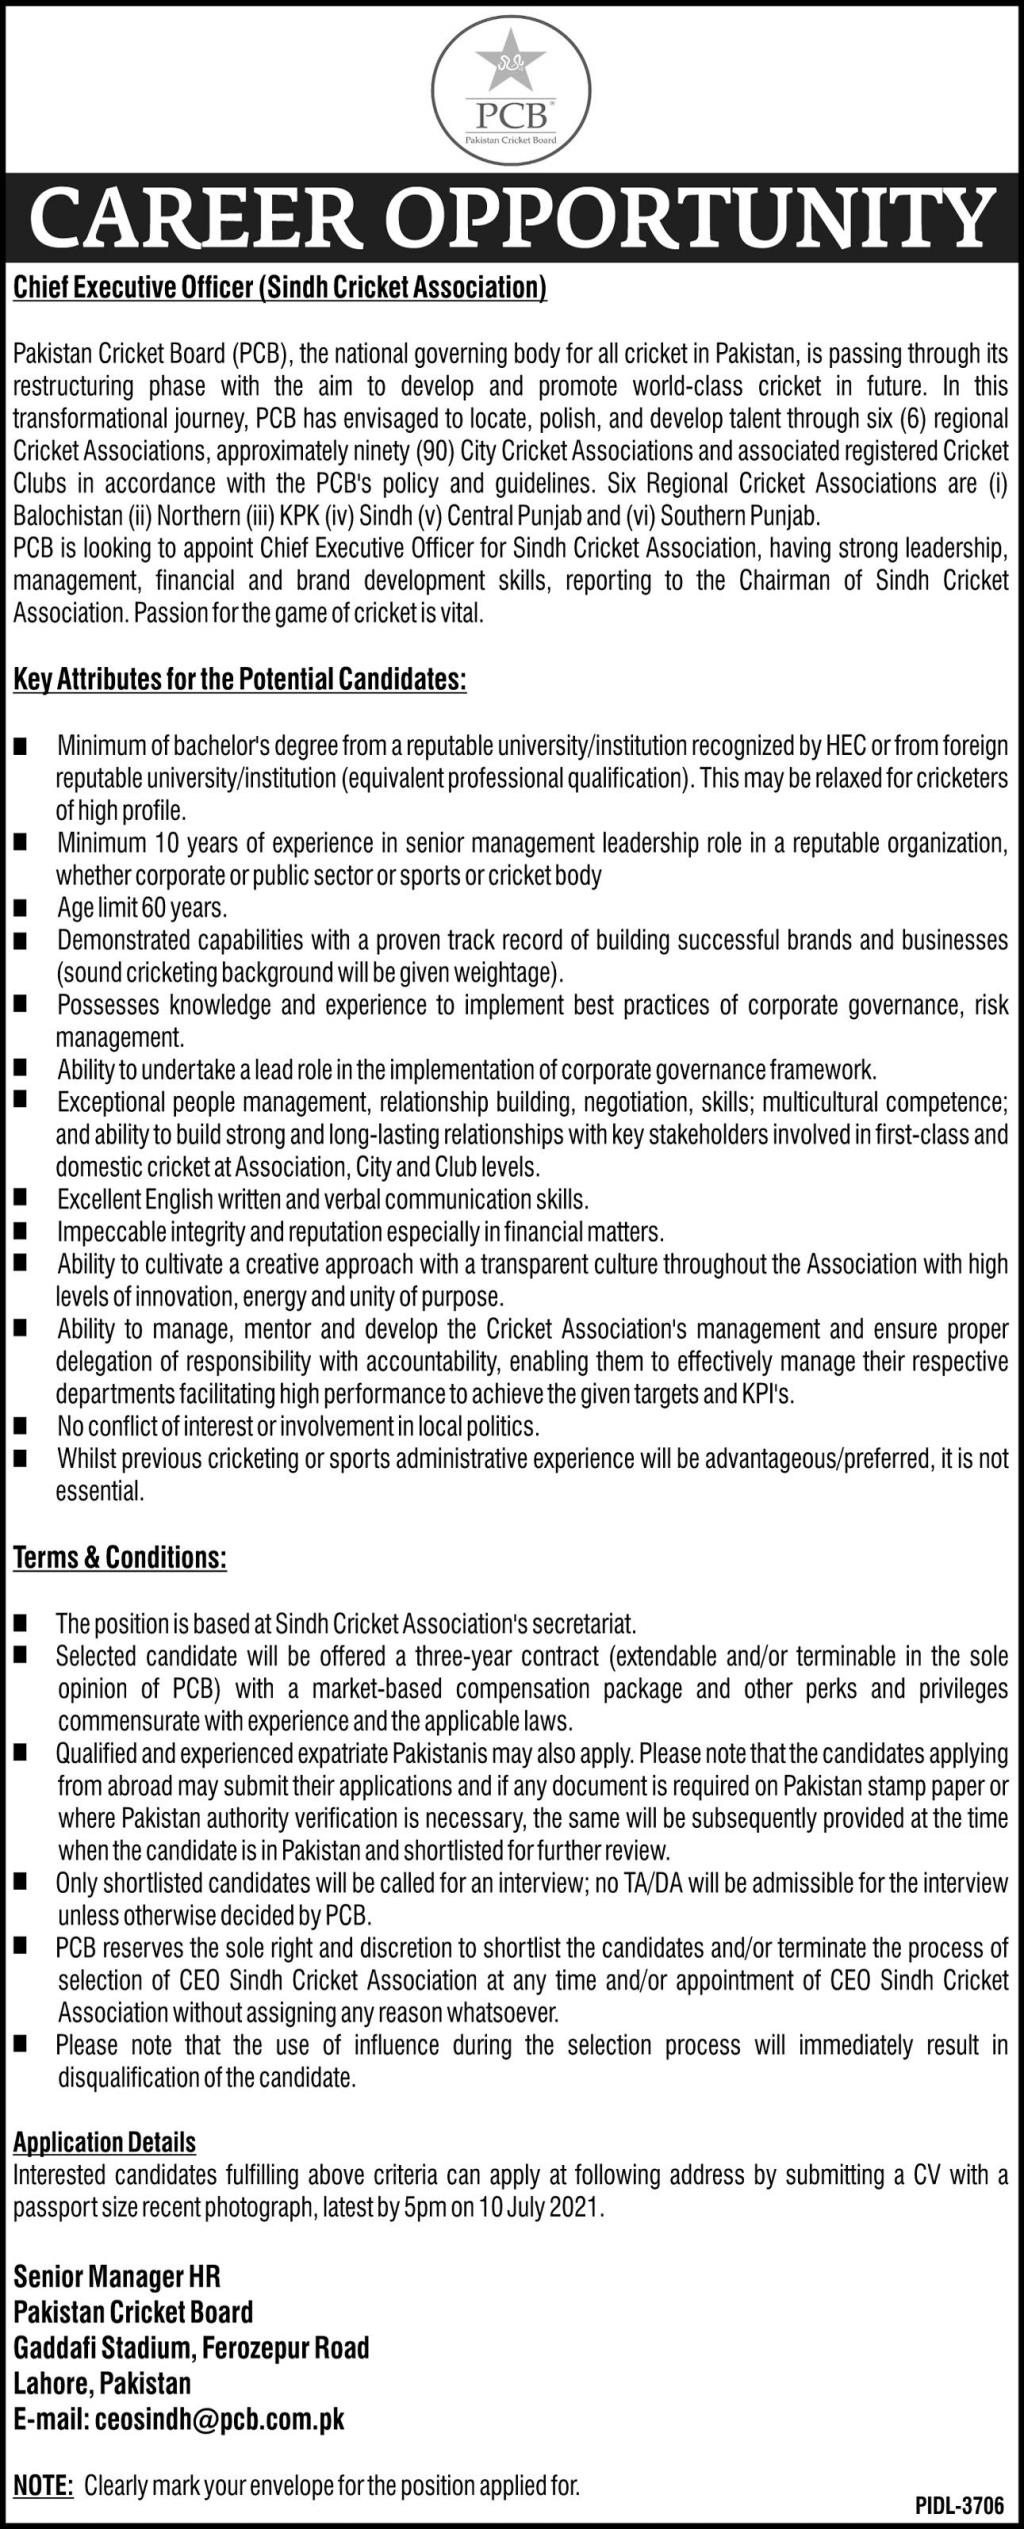 Chief Executive Officer Jobs in PCB Pakistan Cricket Board